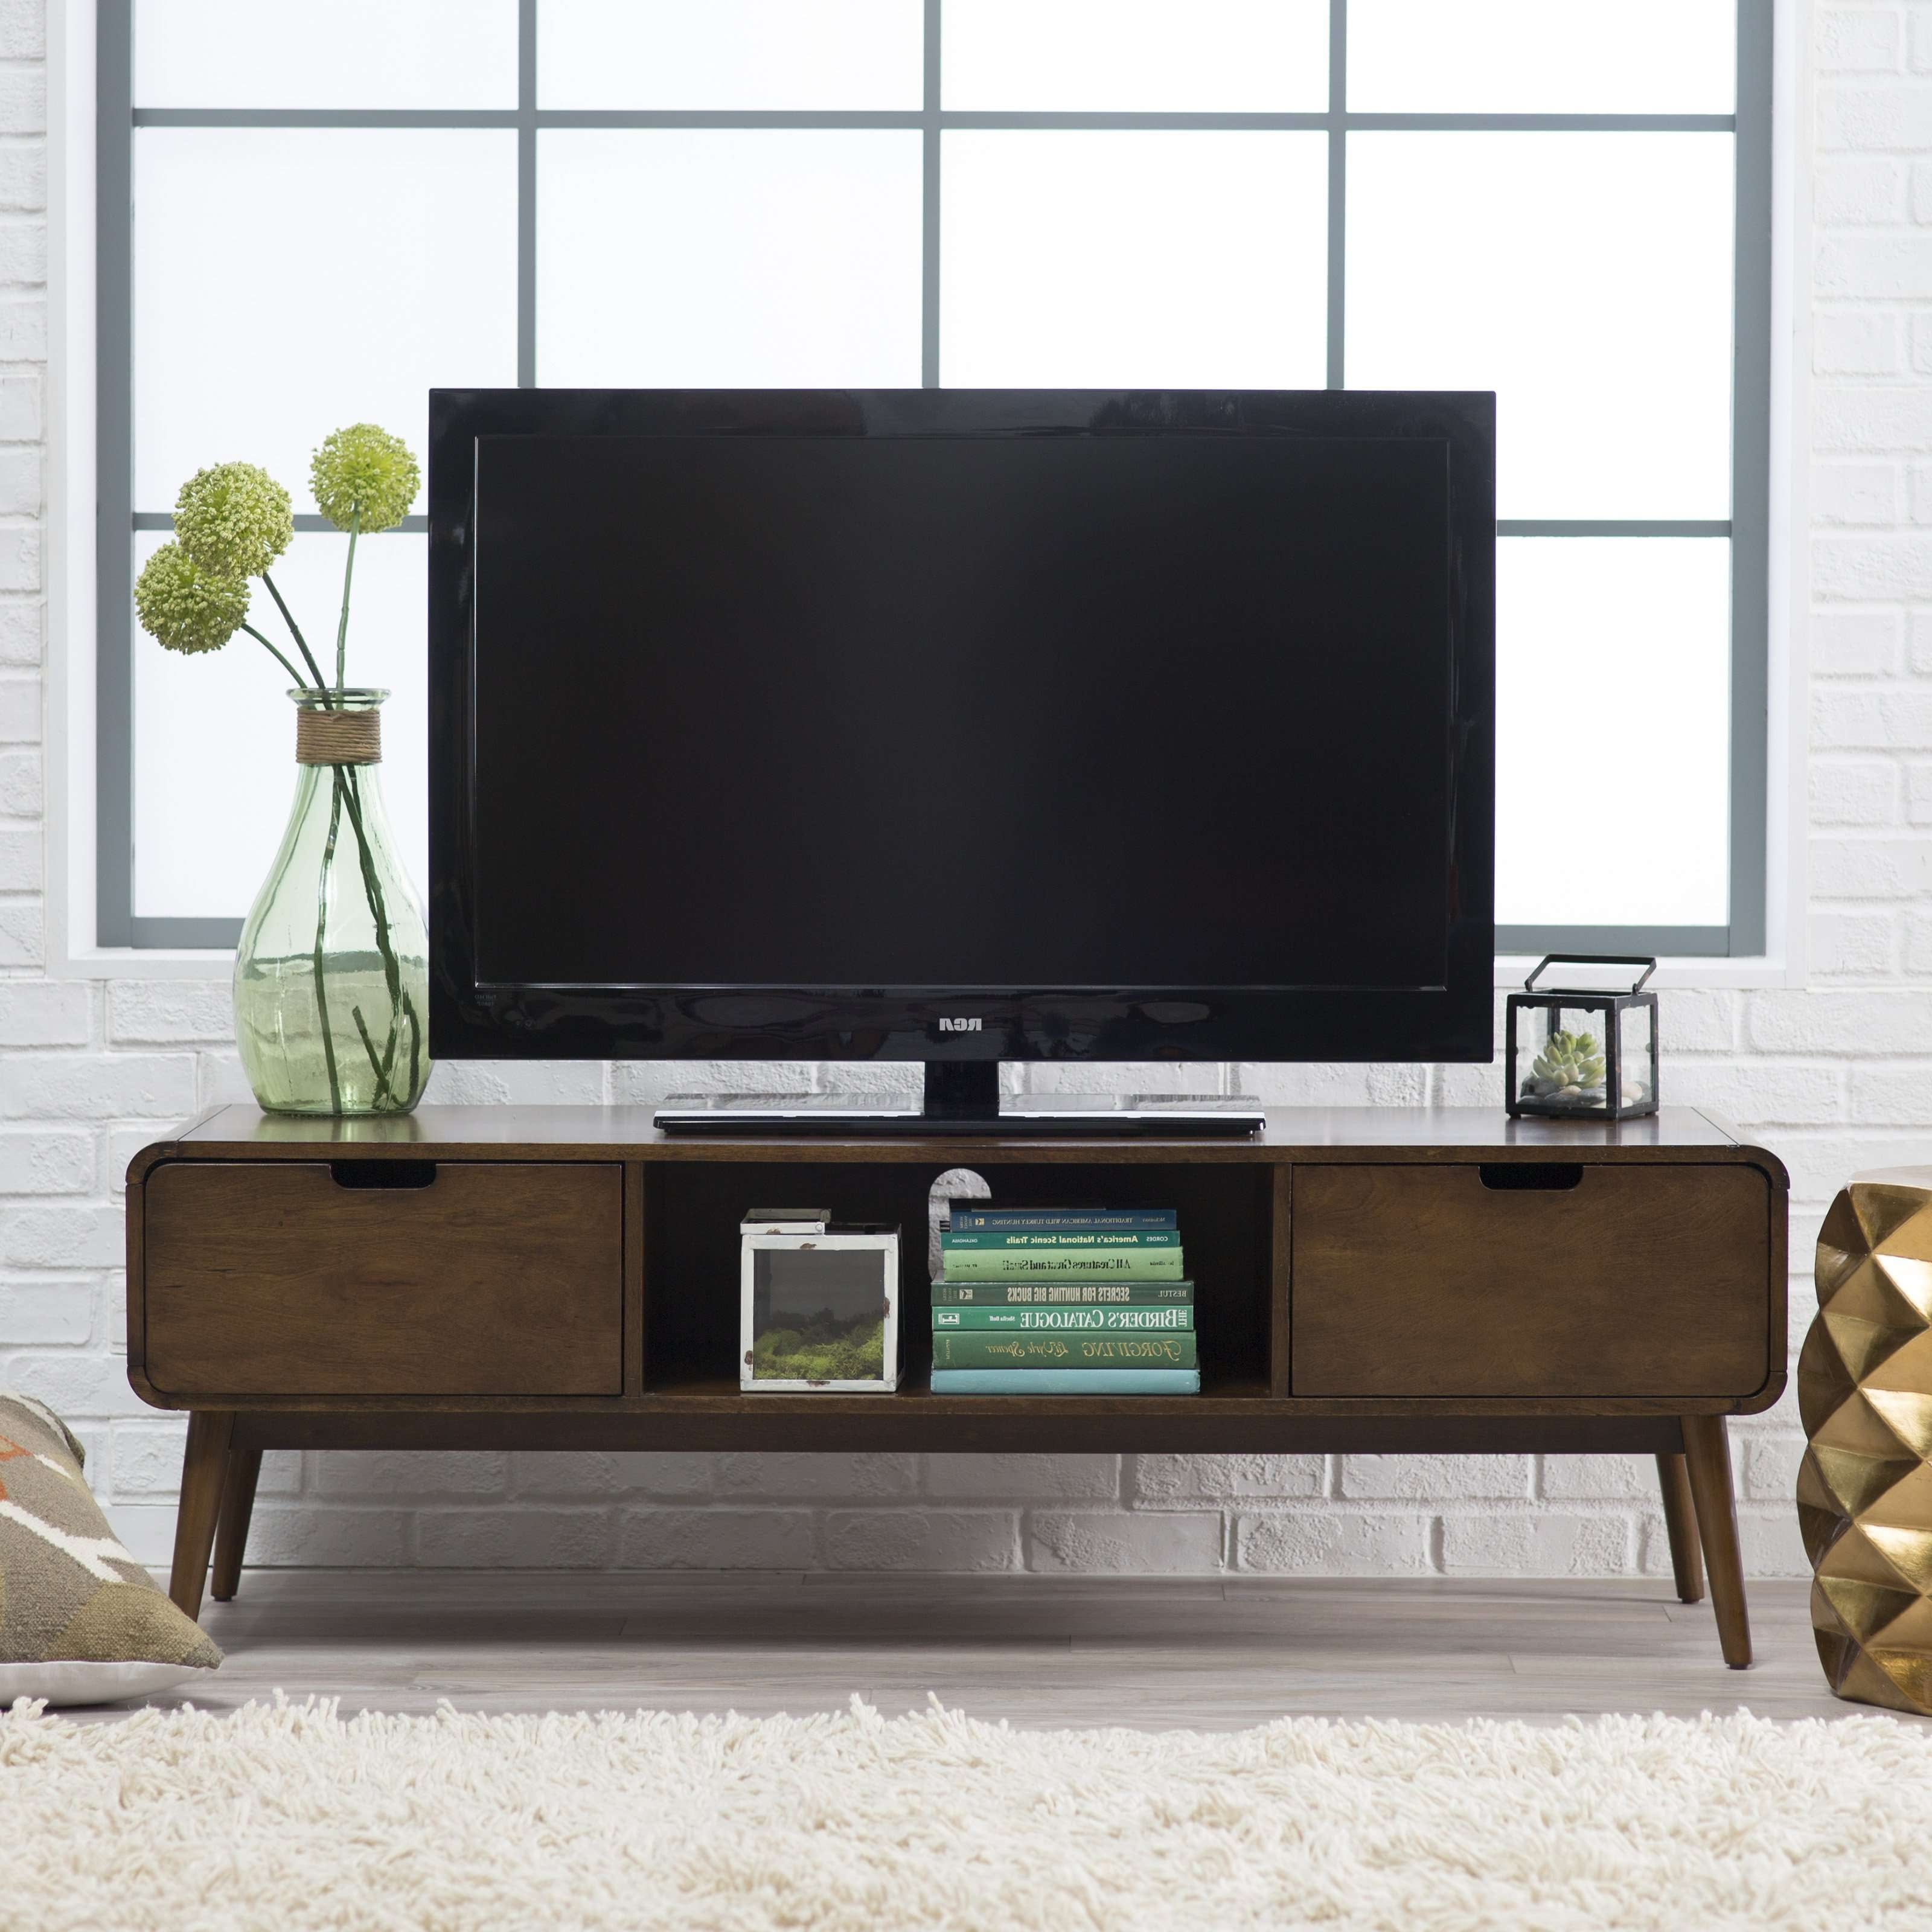 Belham Living Carter Mid Century Modern Tv Stand   Hayneedle Within 24 Inch Deep Tv Stands (View 6 of 15)